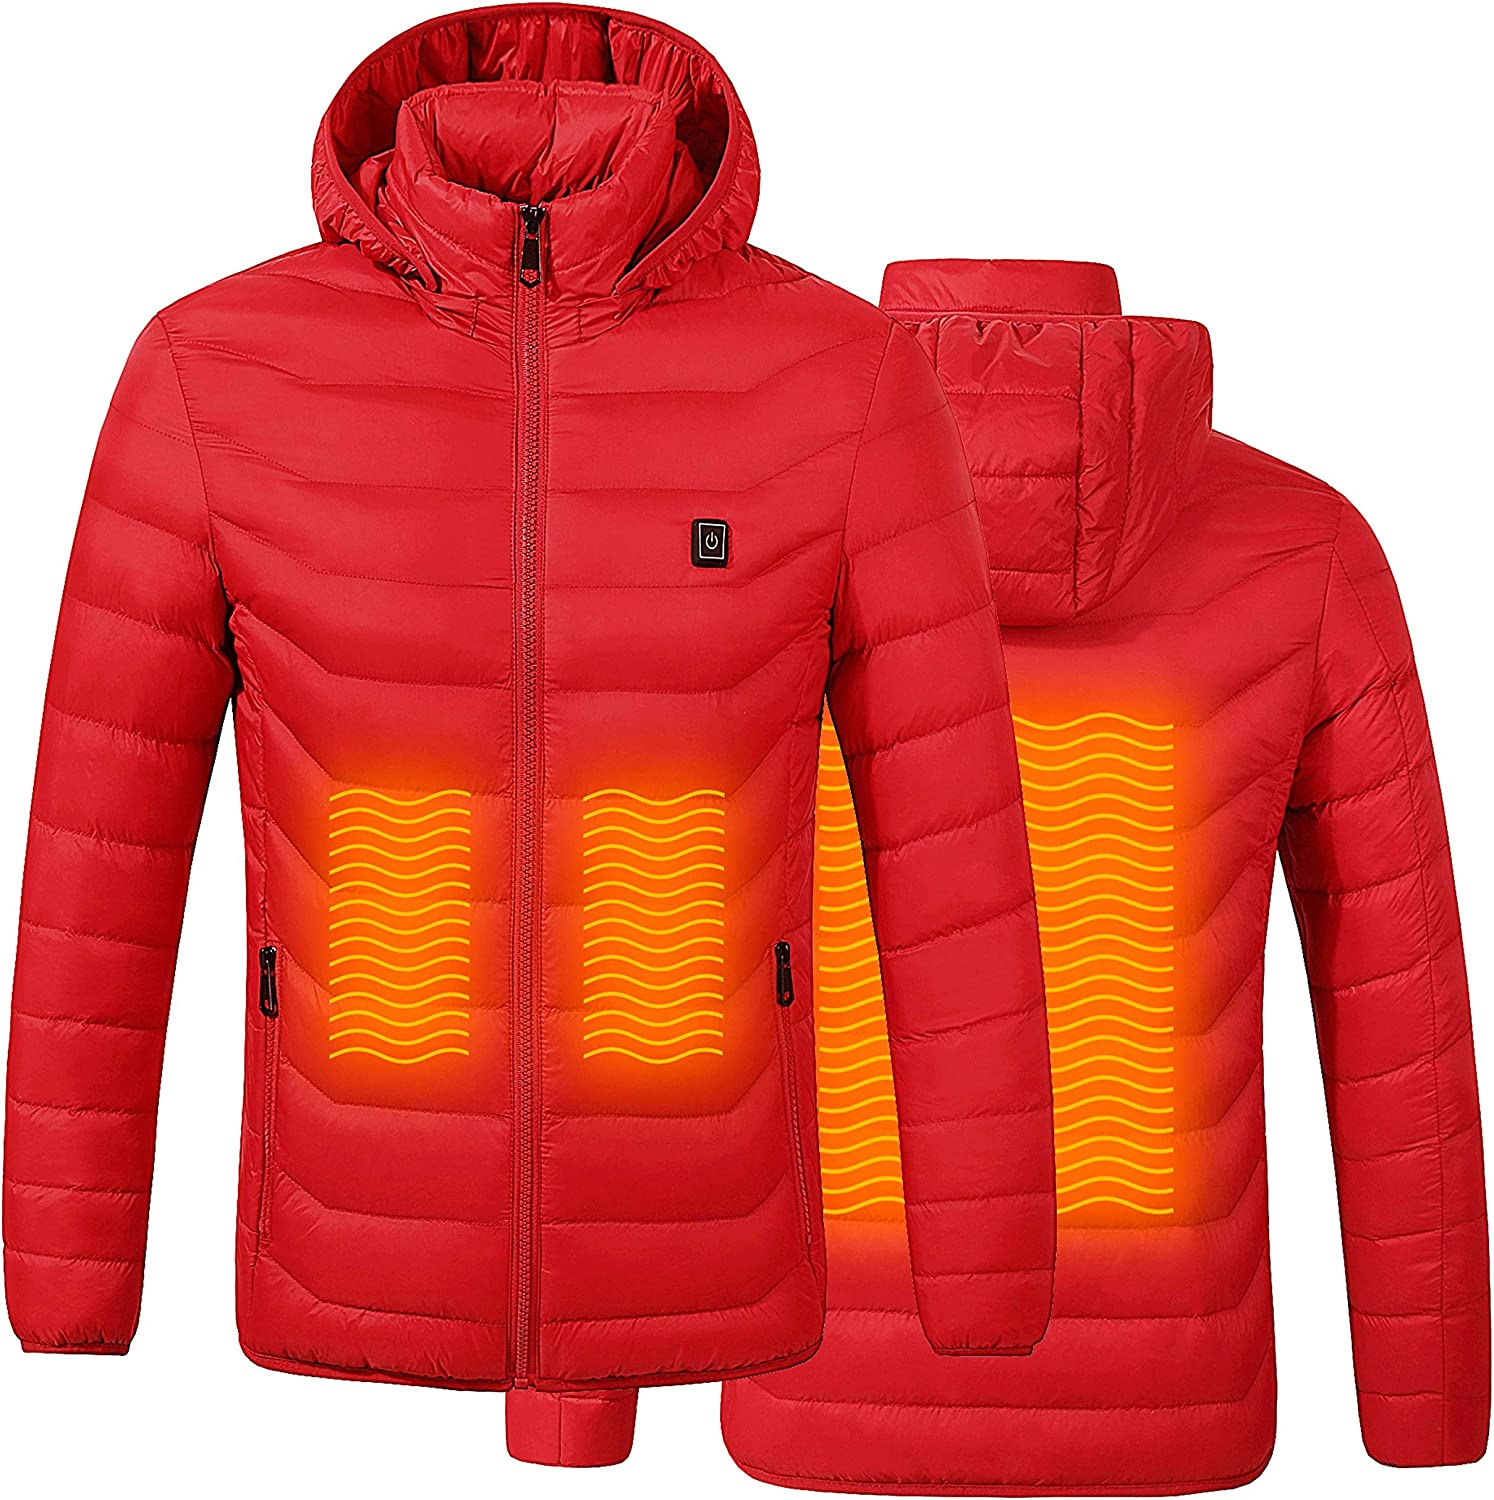 K7 Heated Super Lightweight Jacket for Boys and Girls (Juniors, Teenagers) with Rechargeable Battery Pack Included